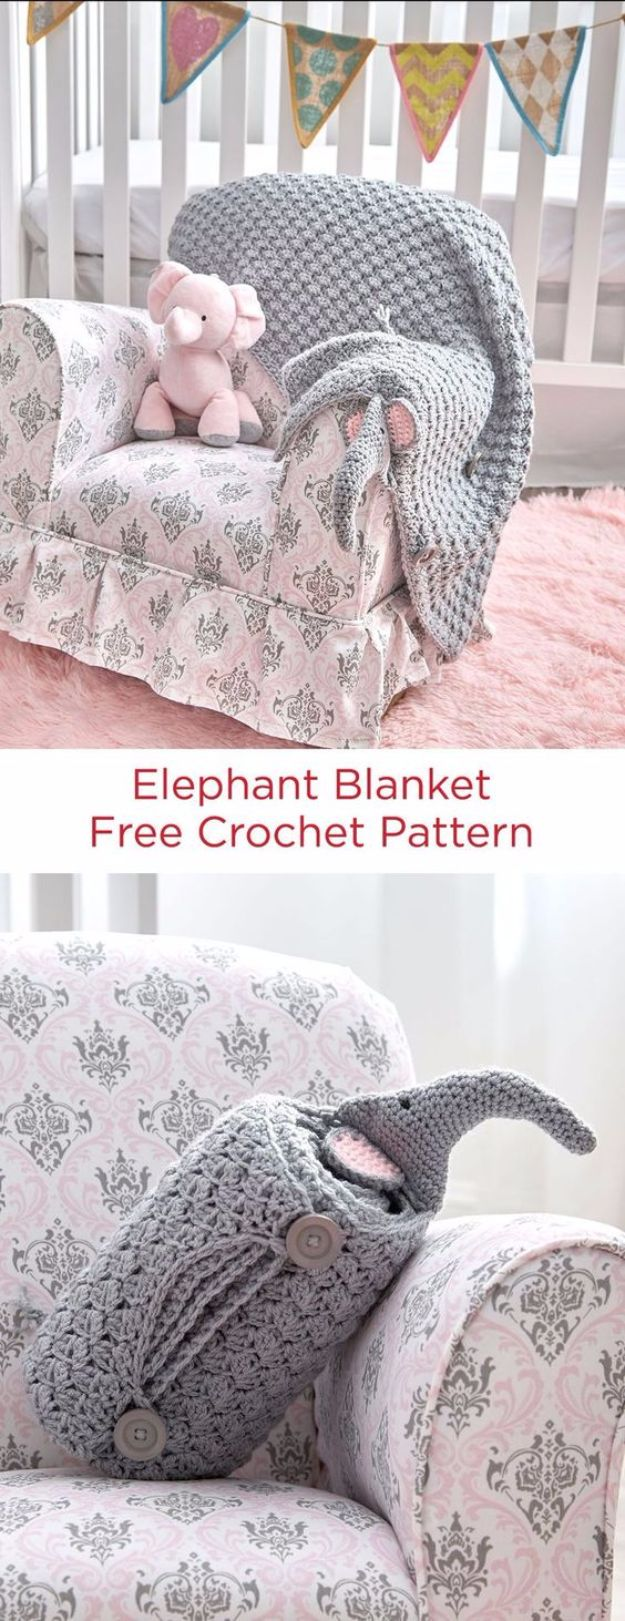 DIY Ideas With Elephants - Elephant Blanket - Easy Wall Art Ideas, Crafts, Jewelry, Arts and Craft Projects for Kids, Teens and Adults- Simple Canvases, Throw Pillows, Cute Paintings for Nurseries, Dollar Store Crafts and Fun Dorm Room and Bedroom Decor - Tutorials for Crafty Ideas Decorated With an Elephant http://diyprojectsforteens.com/diy-ideas-elephants